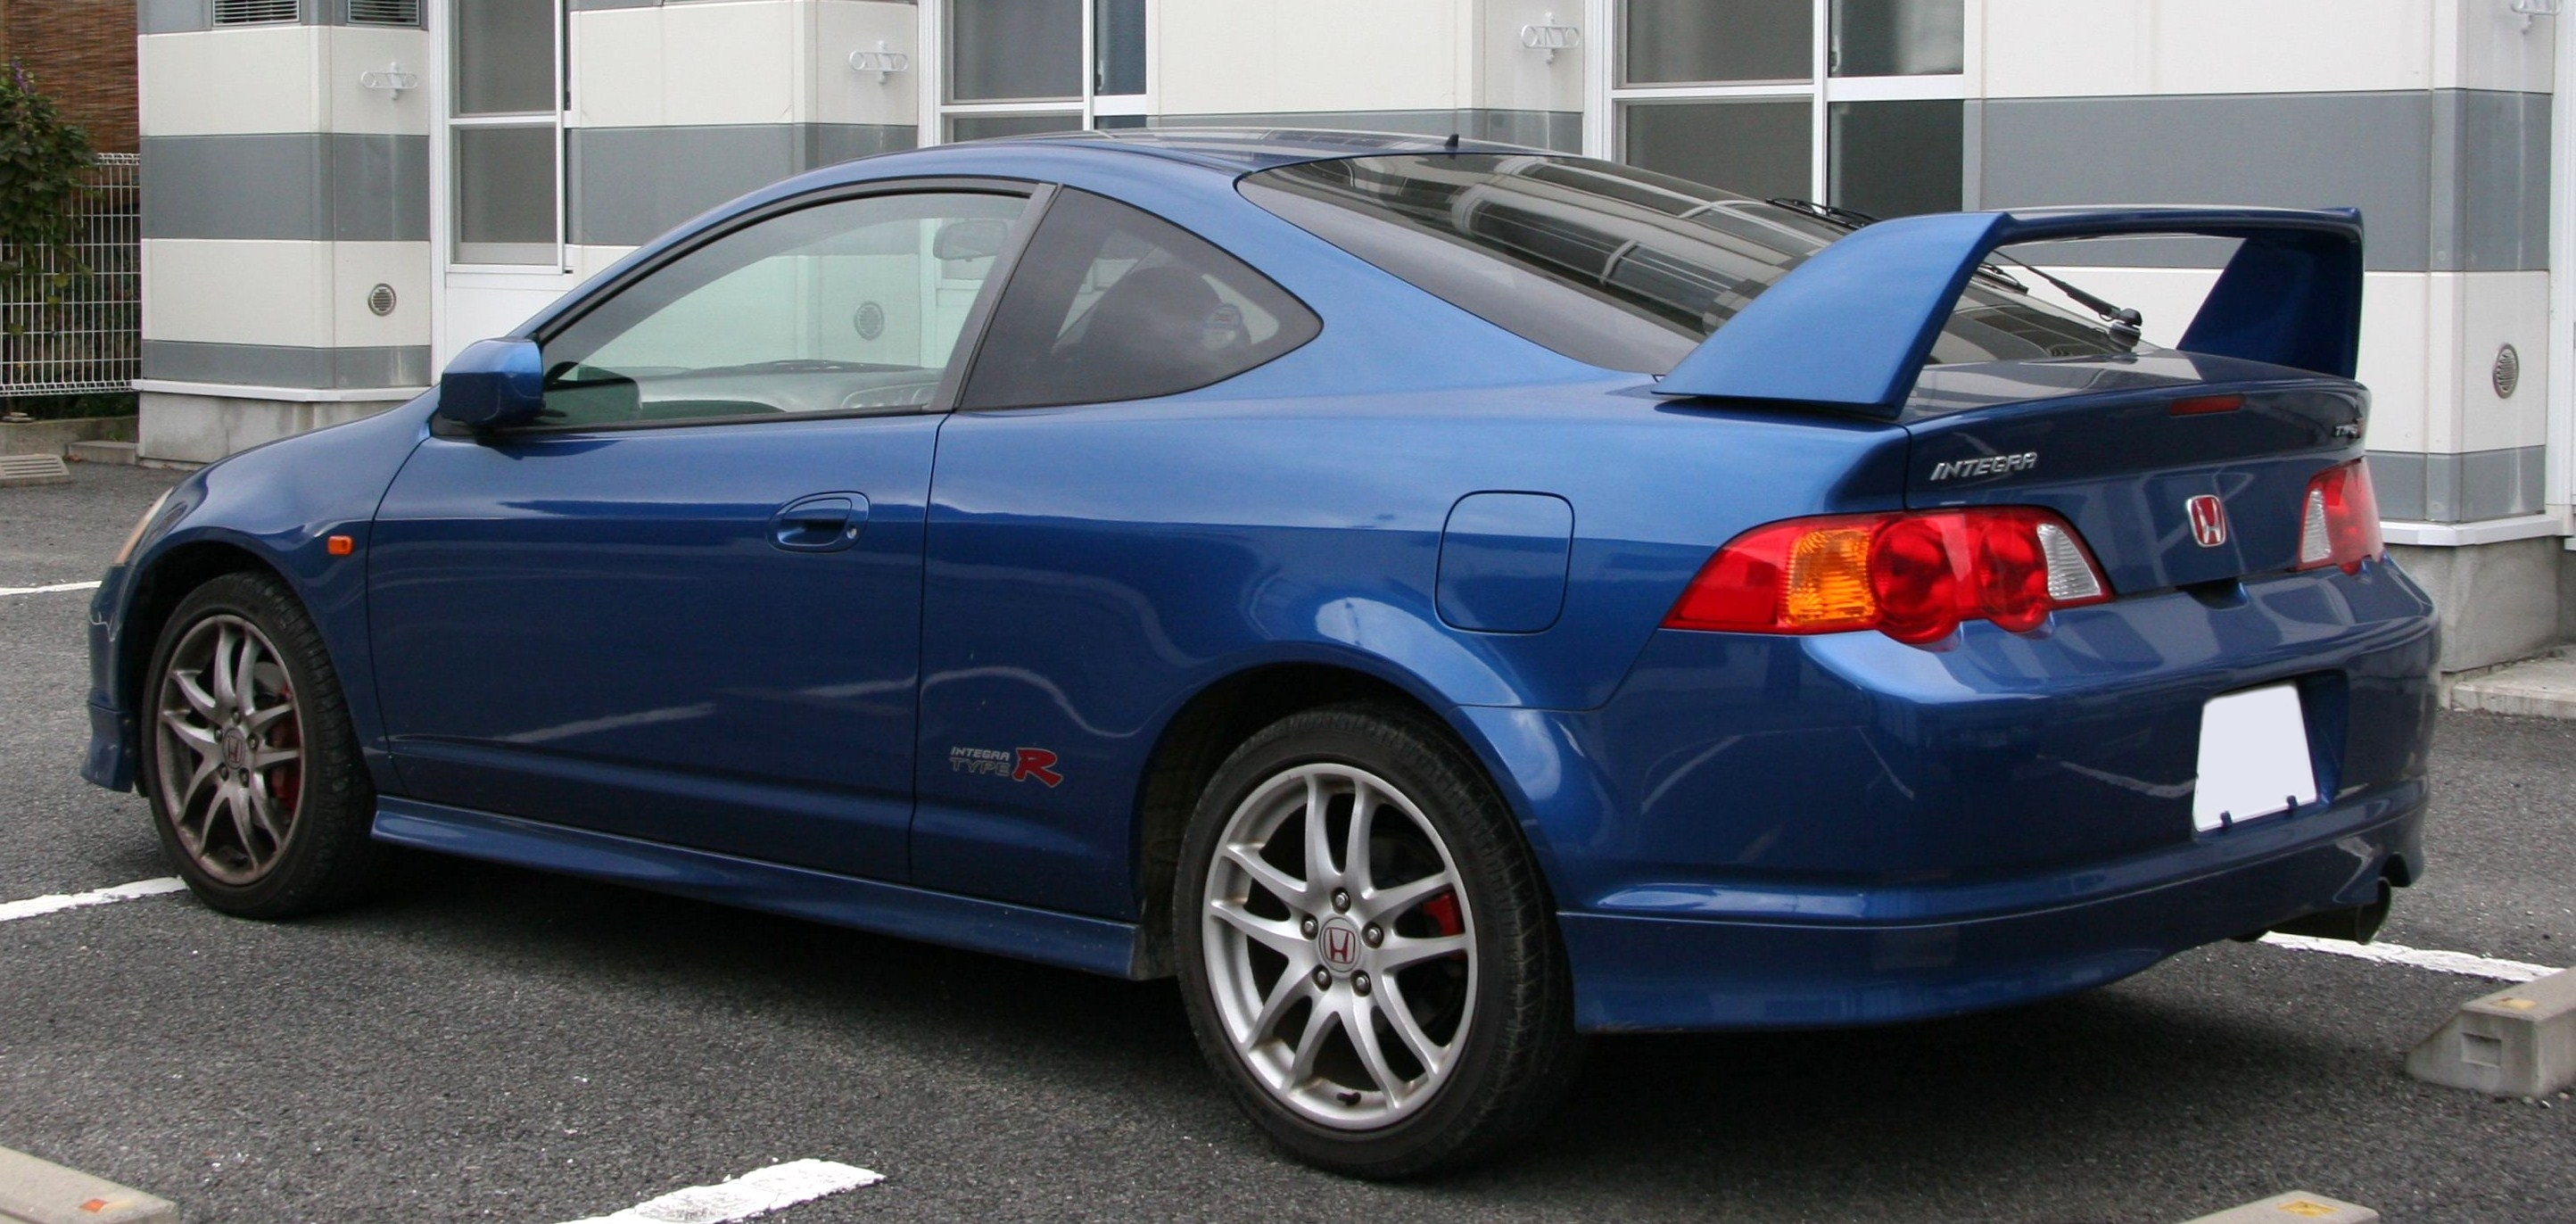 File:2001-2004 Honda Integra Type-R rear.jpg - Wikimedia Commons